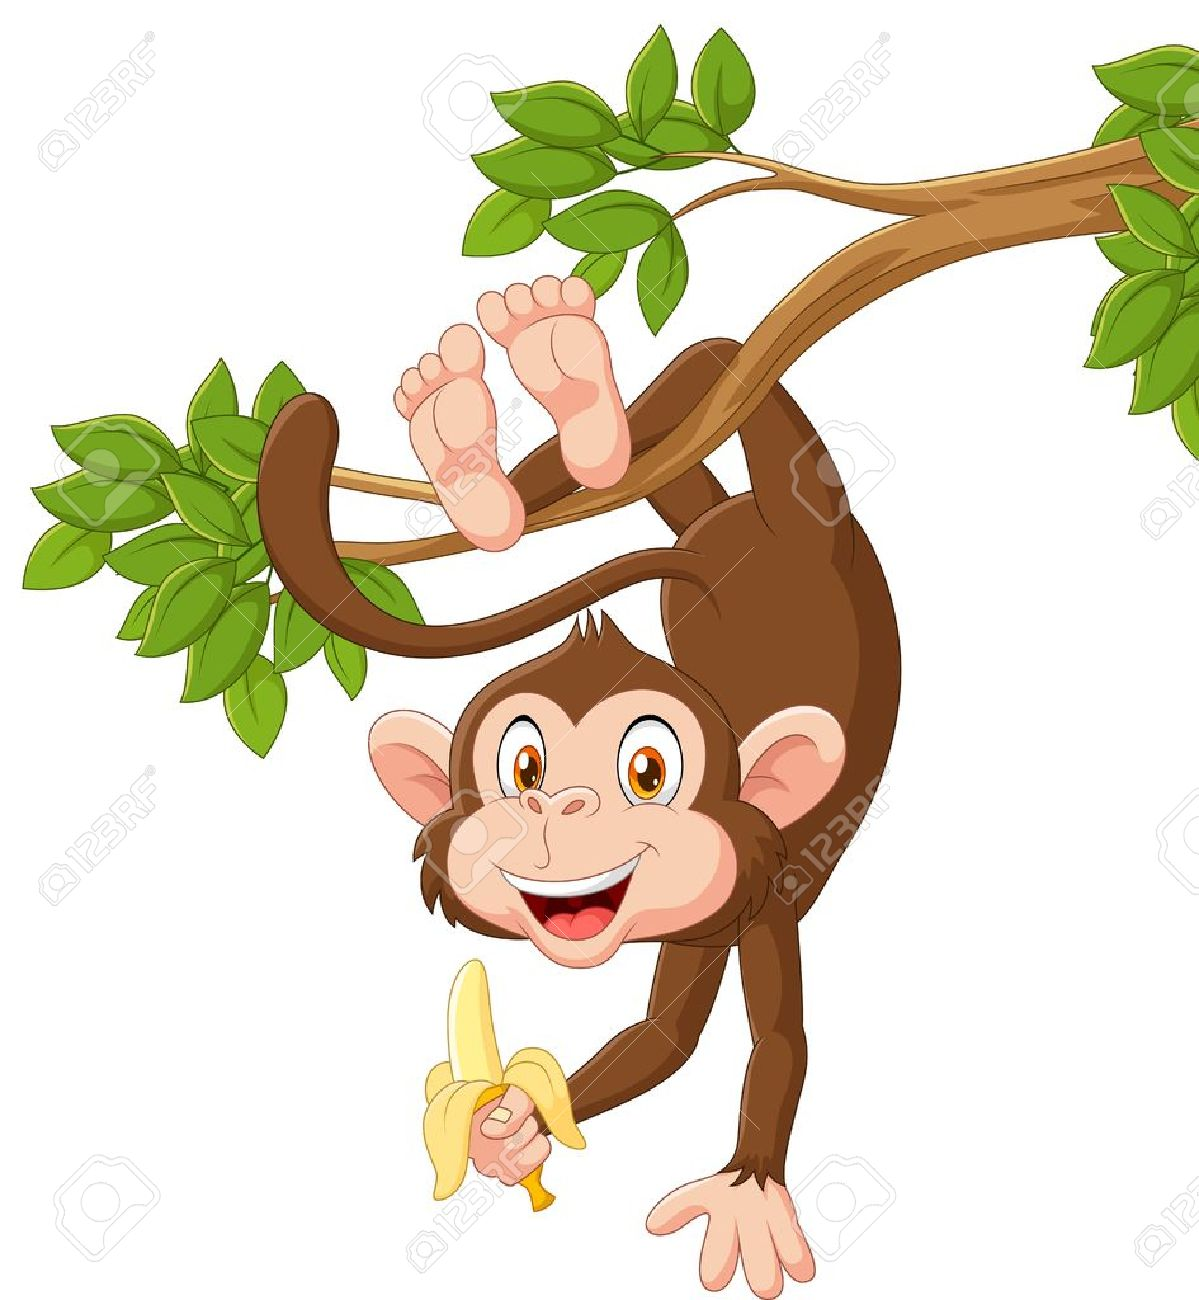 Images for simple cartoon monkey hanging - Vector Illustration Of Cartoon Happy Monkey Hanging And Holding Banana Stock Vector 49007639